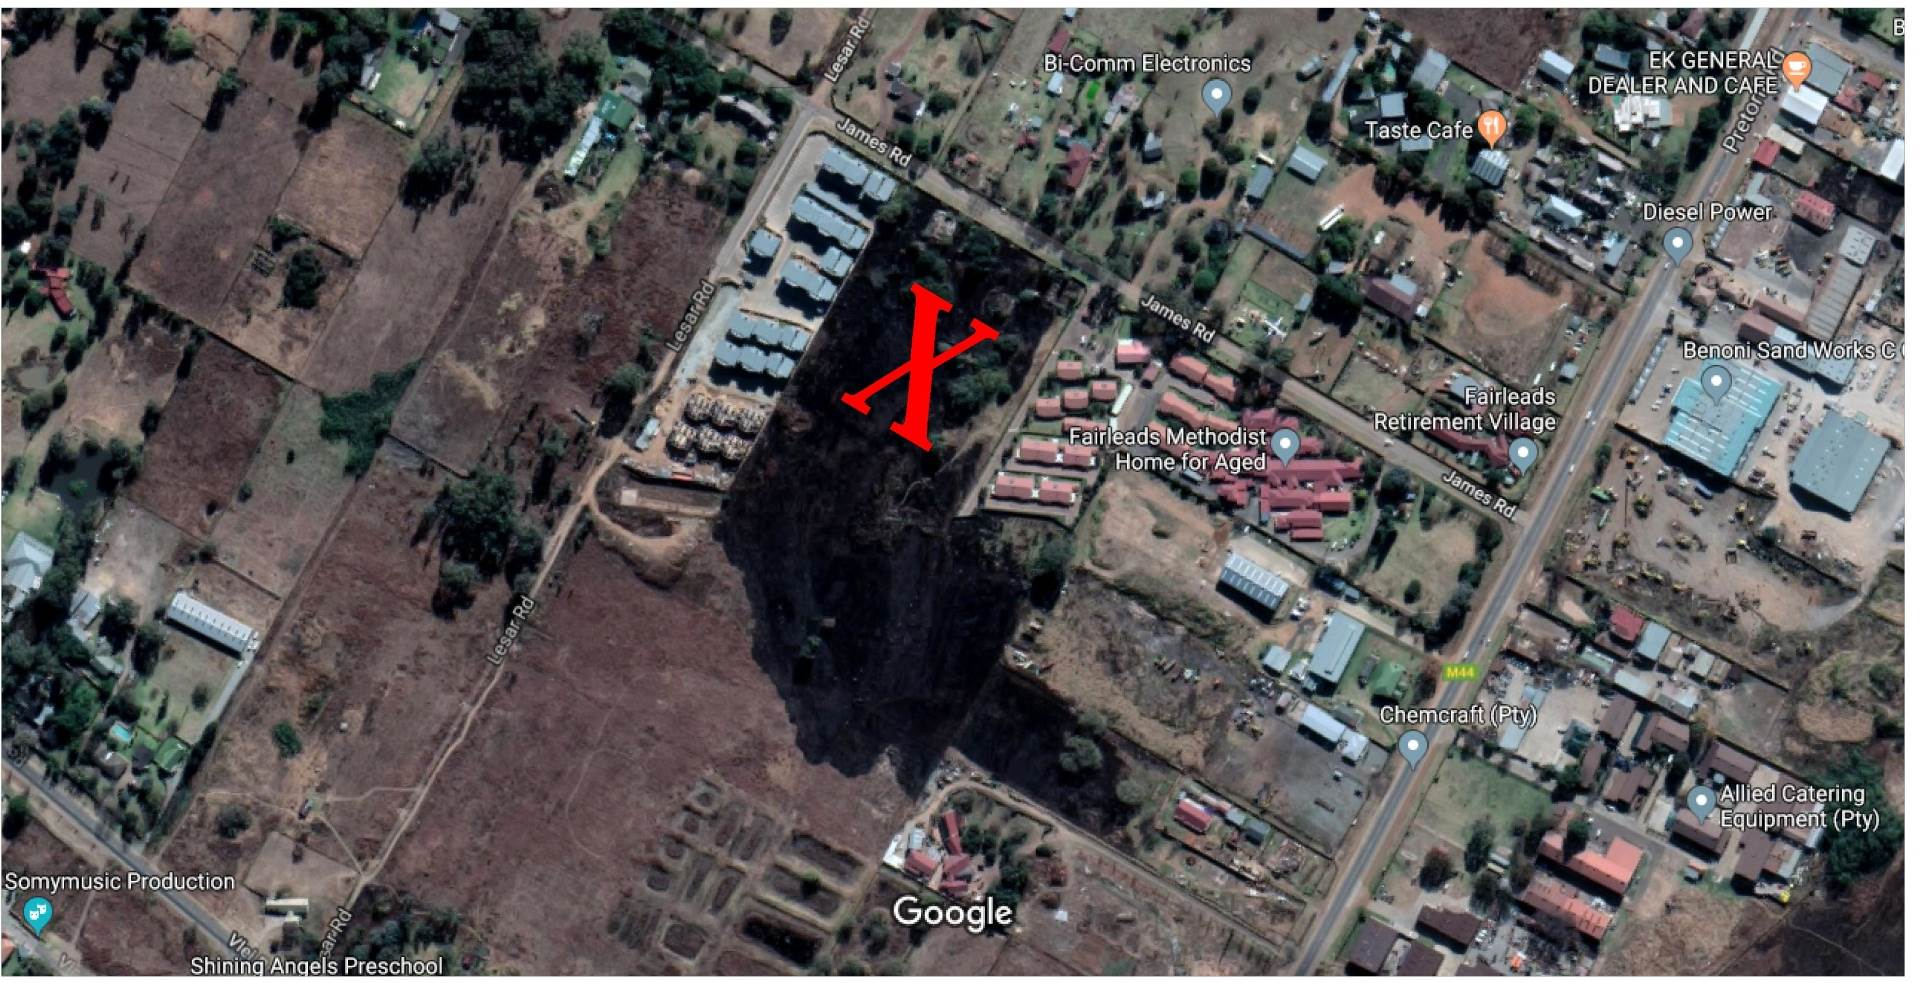 Vacant Land Agricultural For Sale In Fairlead, Benoni, Gauteng for R